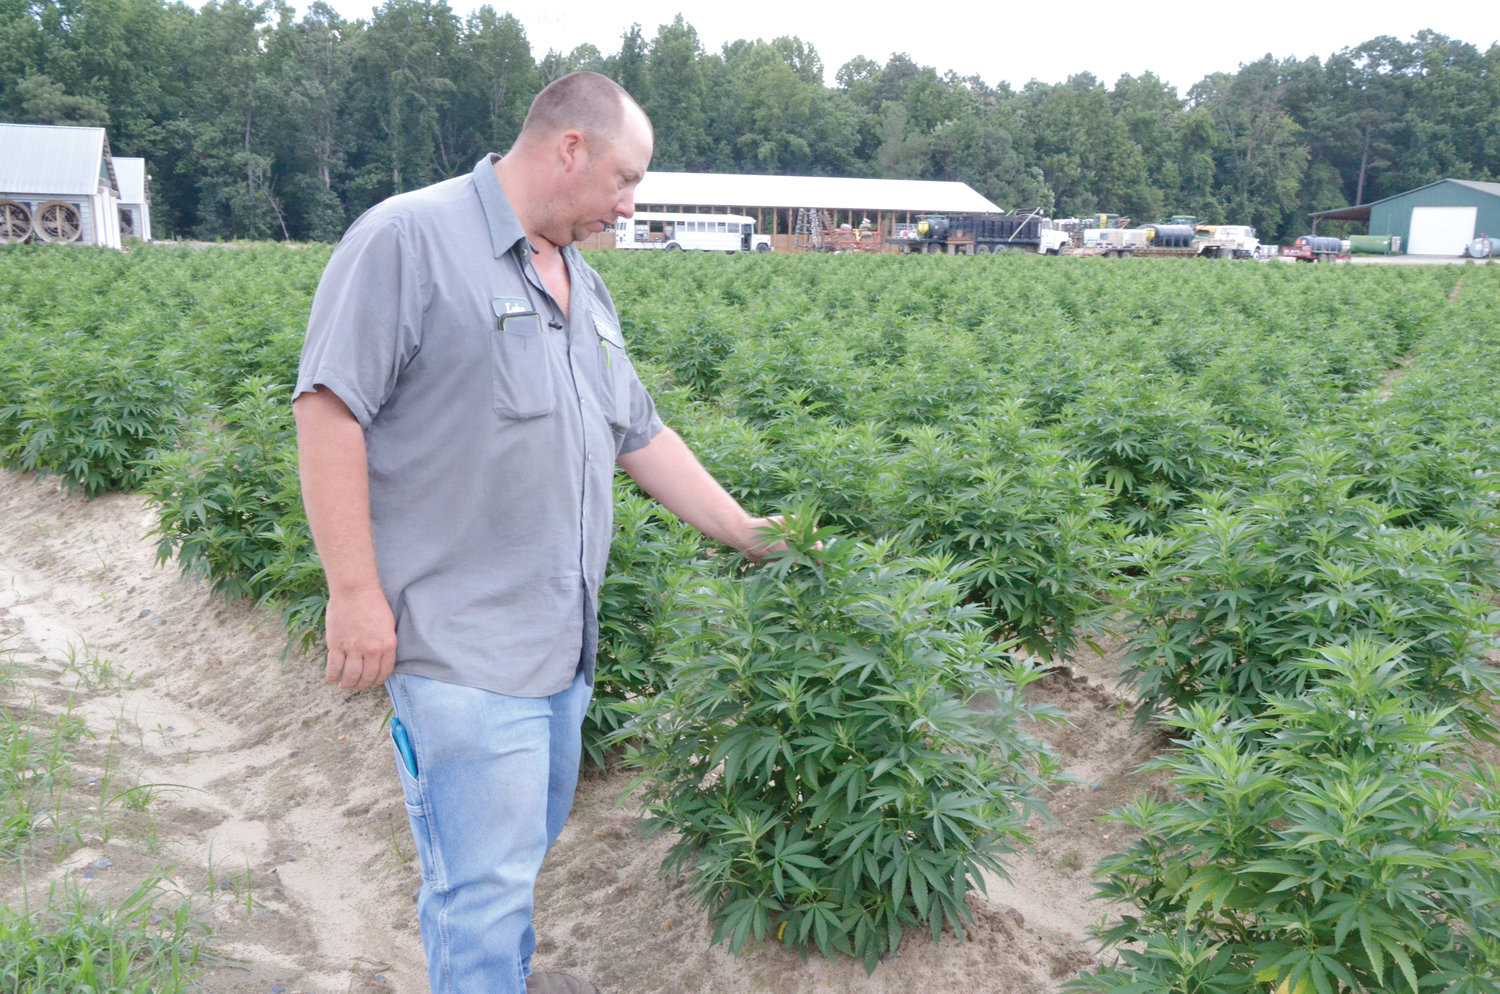 The Gary Thomas Farms have planted about 30 acres of industrial hemp in fields that used to hold produce or tobacco.